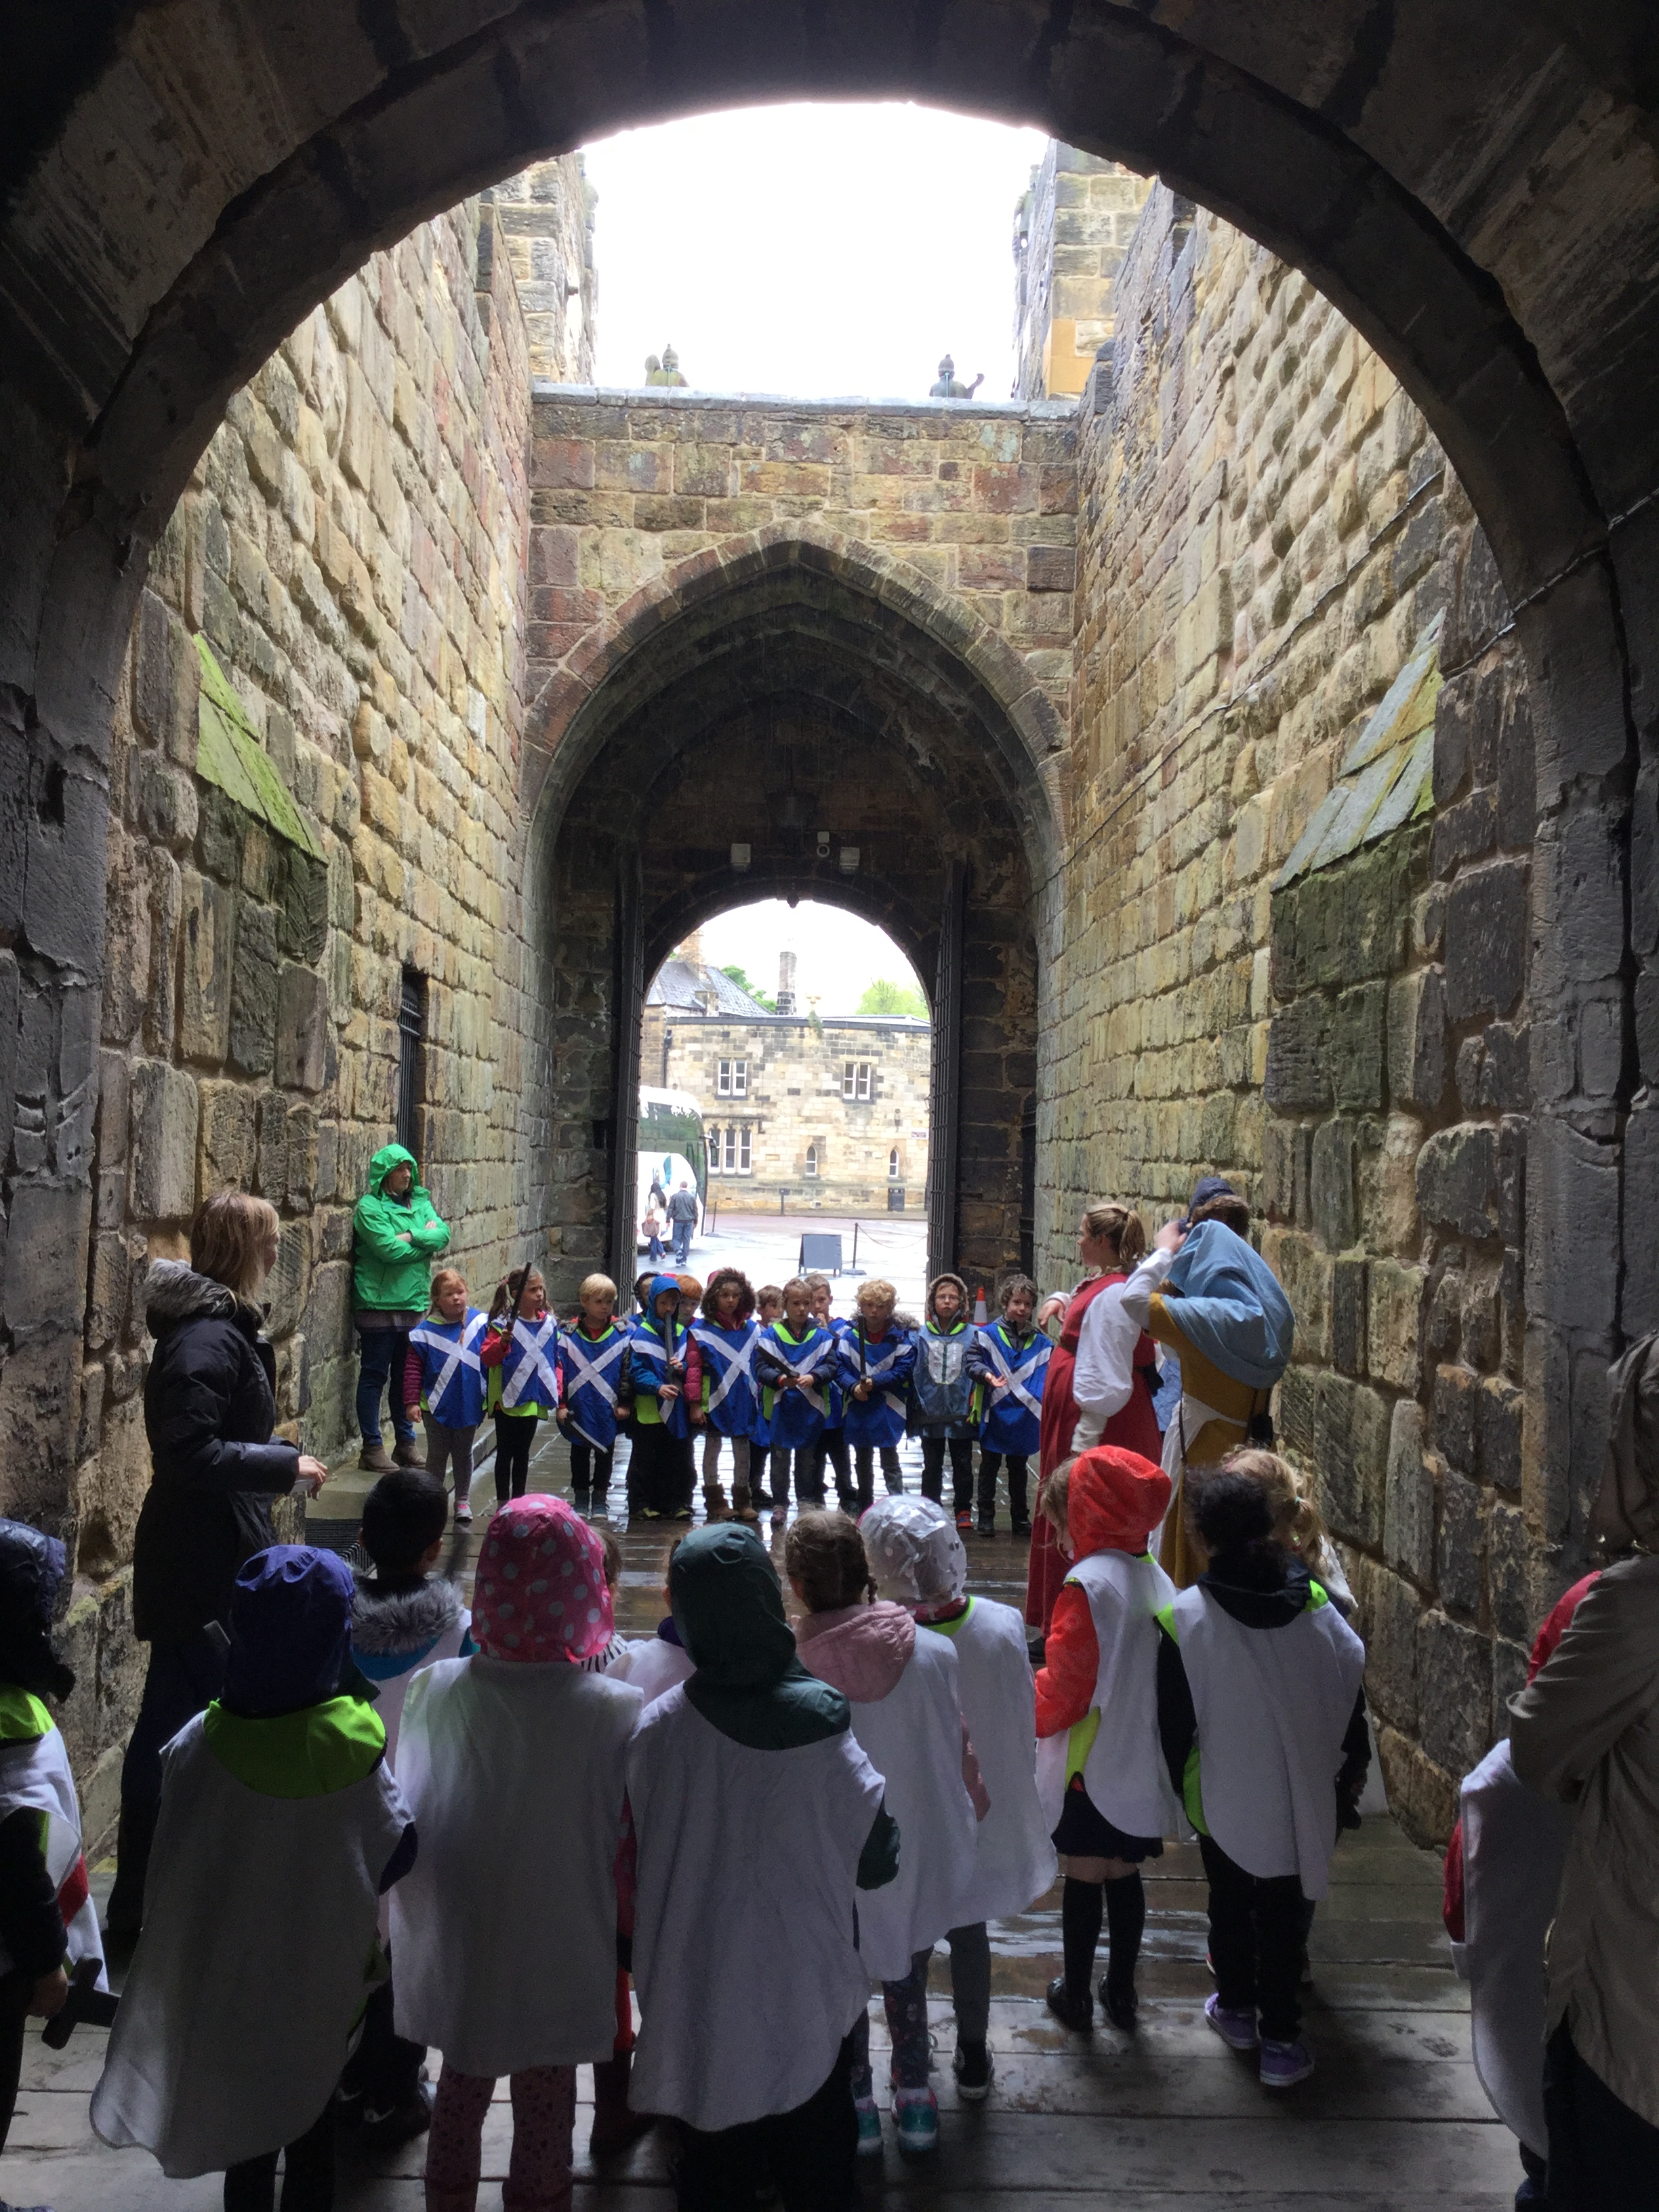 Were Going To Be Seeing Some Really >> Our Amazing Alnwick Castle Adventure! - Archibald First School